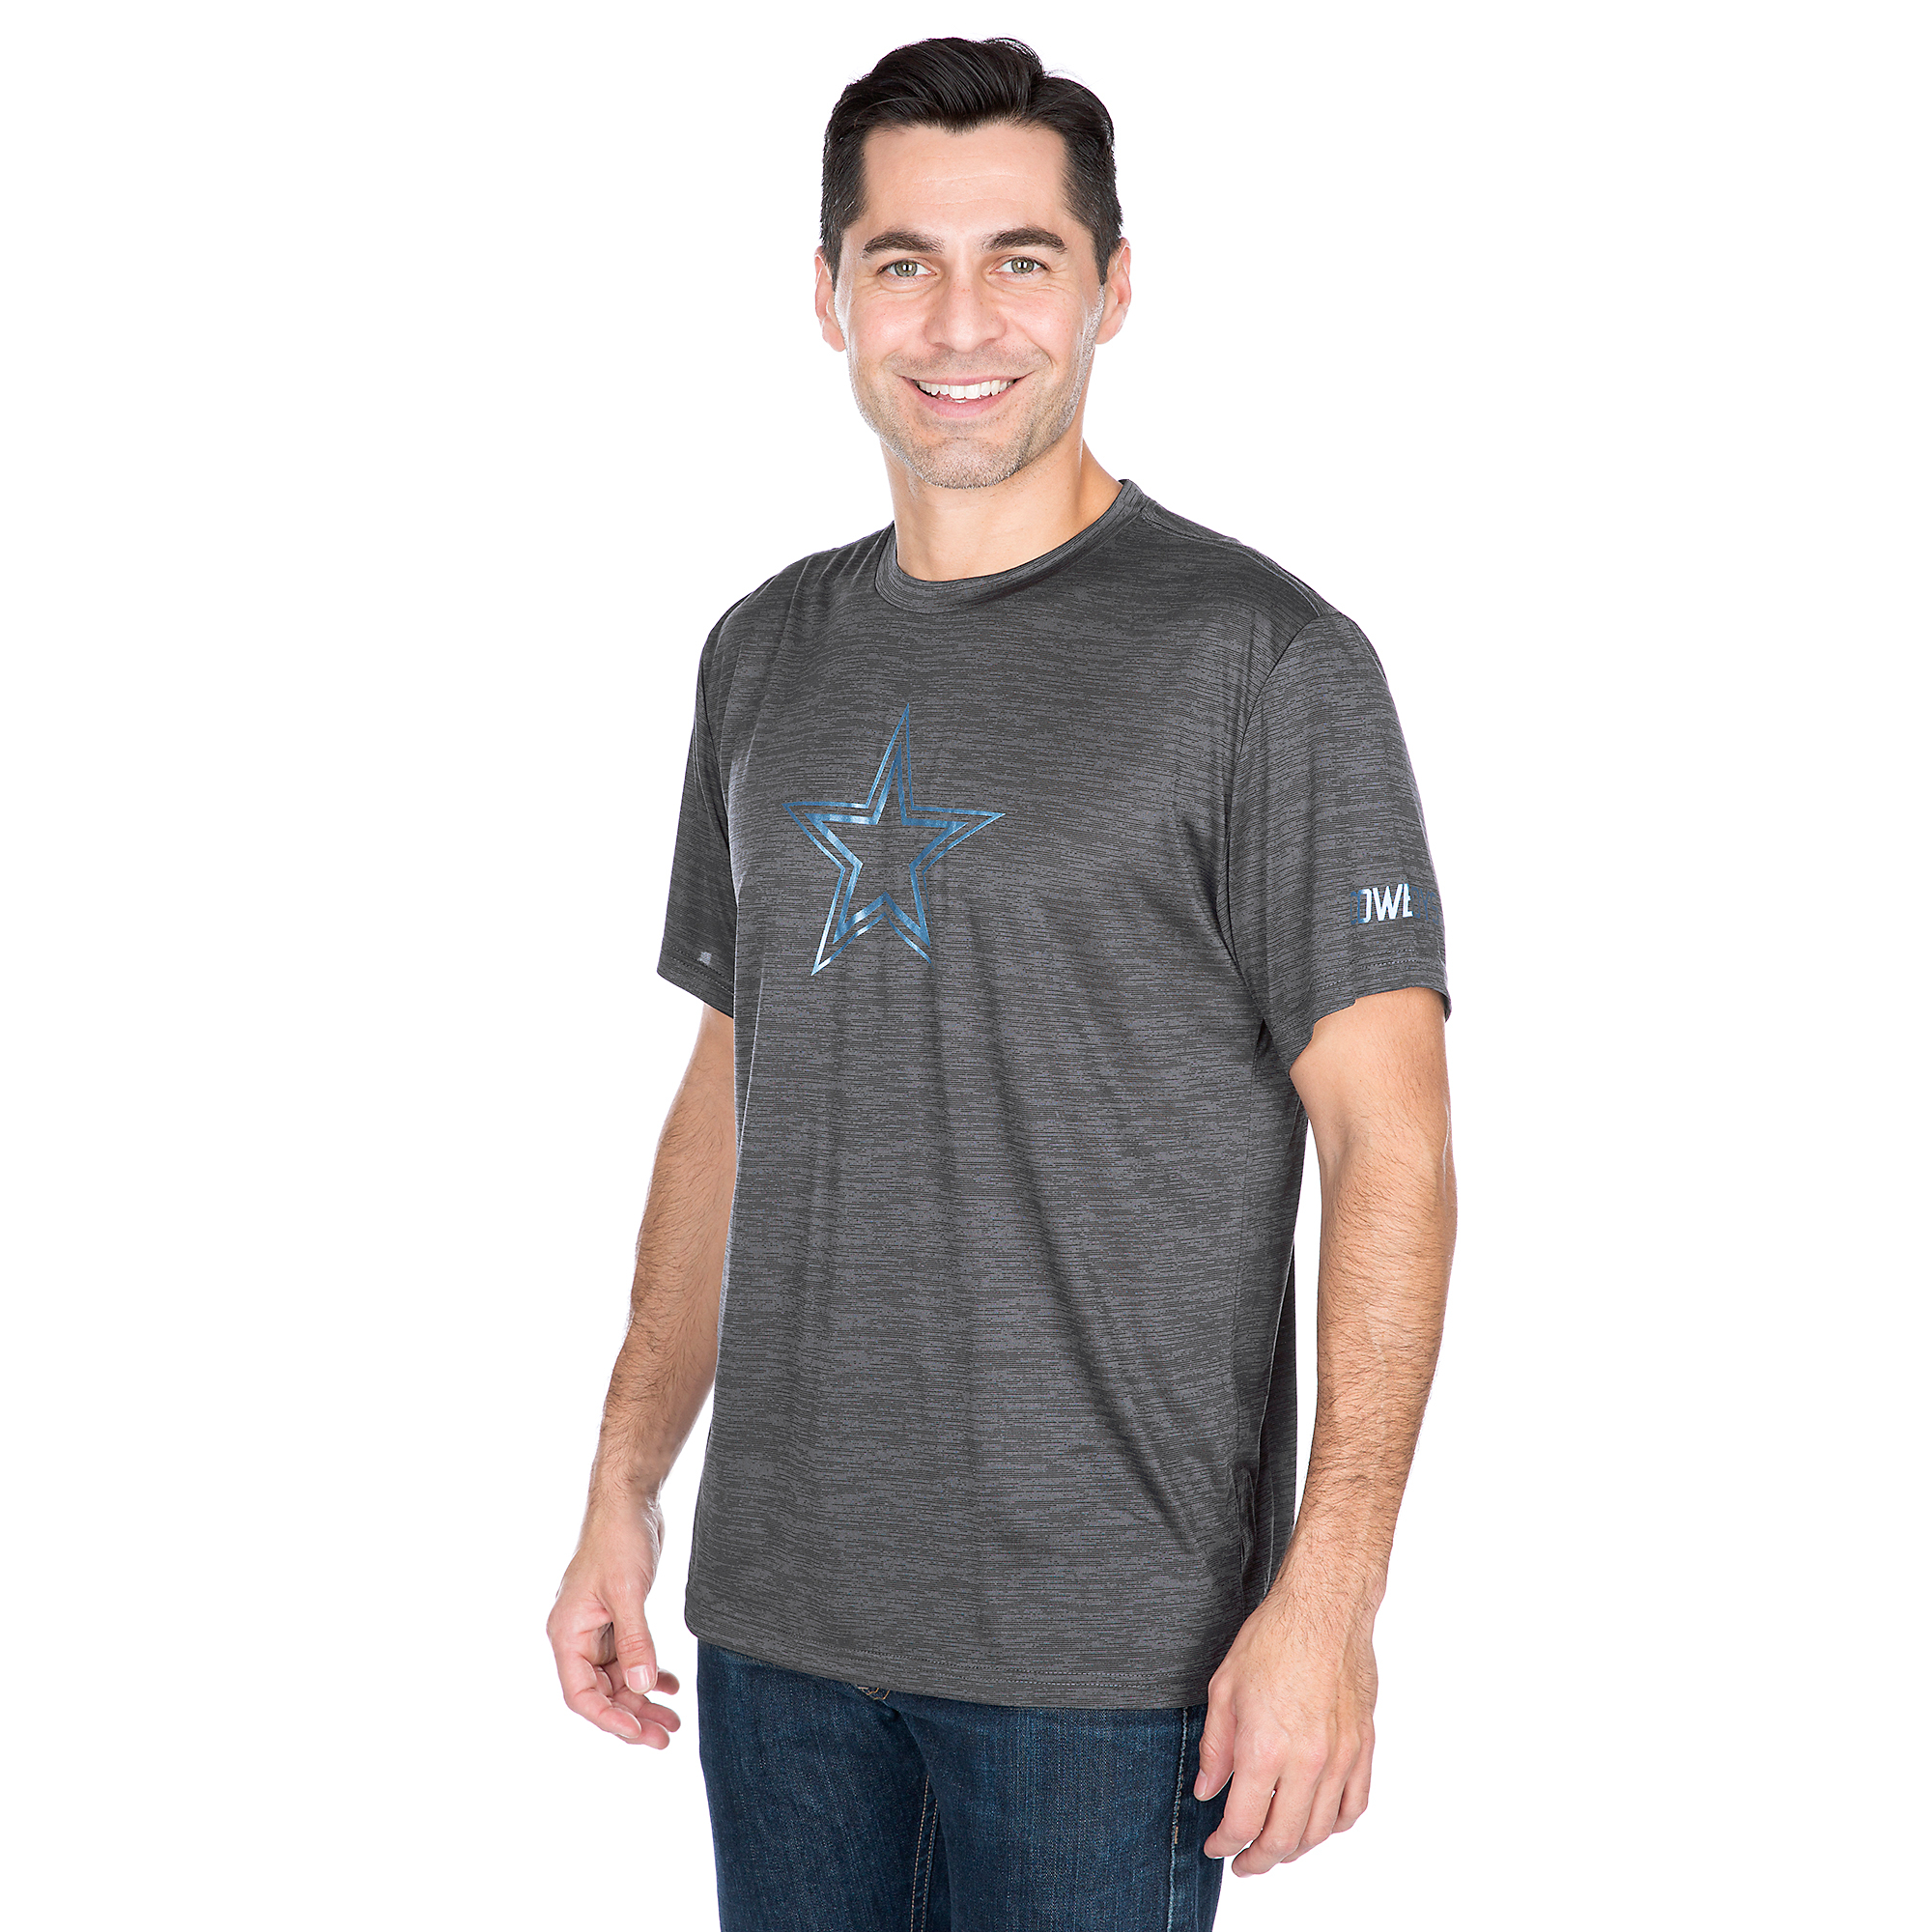 Dallas Cowboys Shock Apollo Short Sleeve Tee